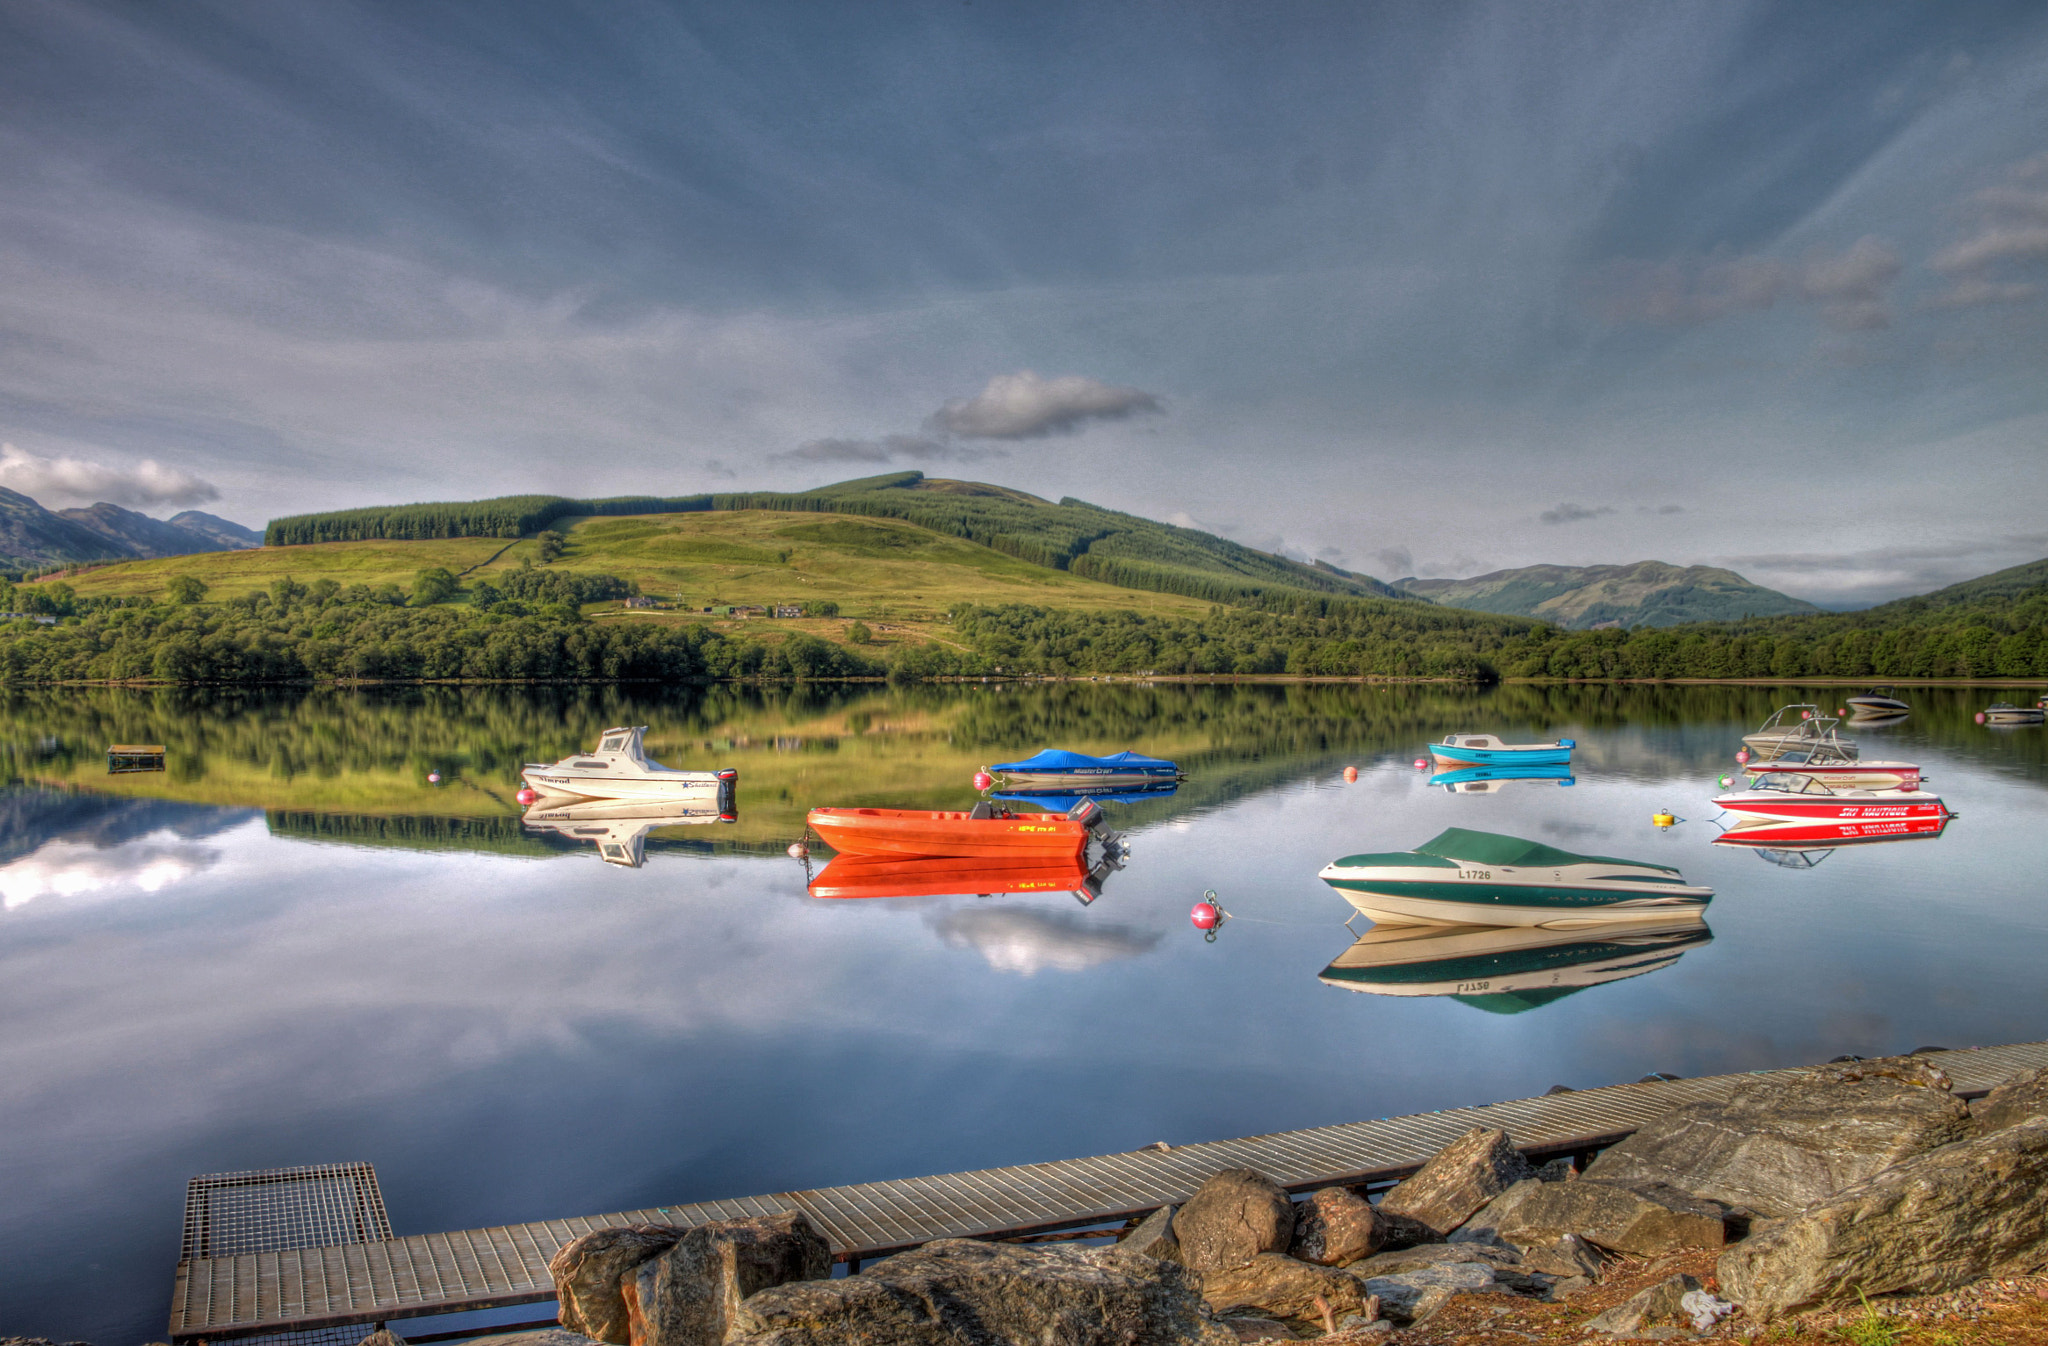 Photograph Reflectons On The Loch by Hilda Murray on 500px